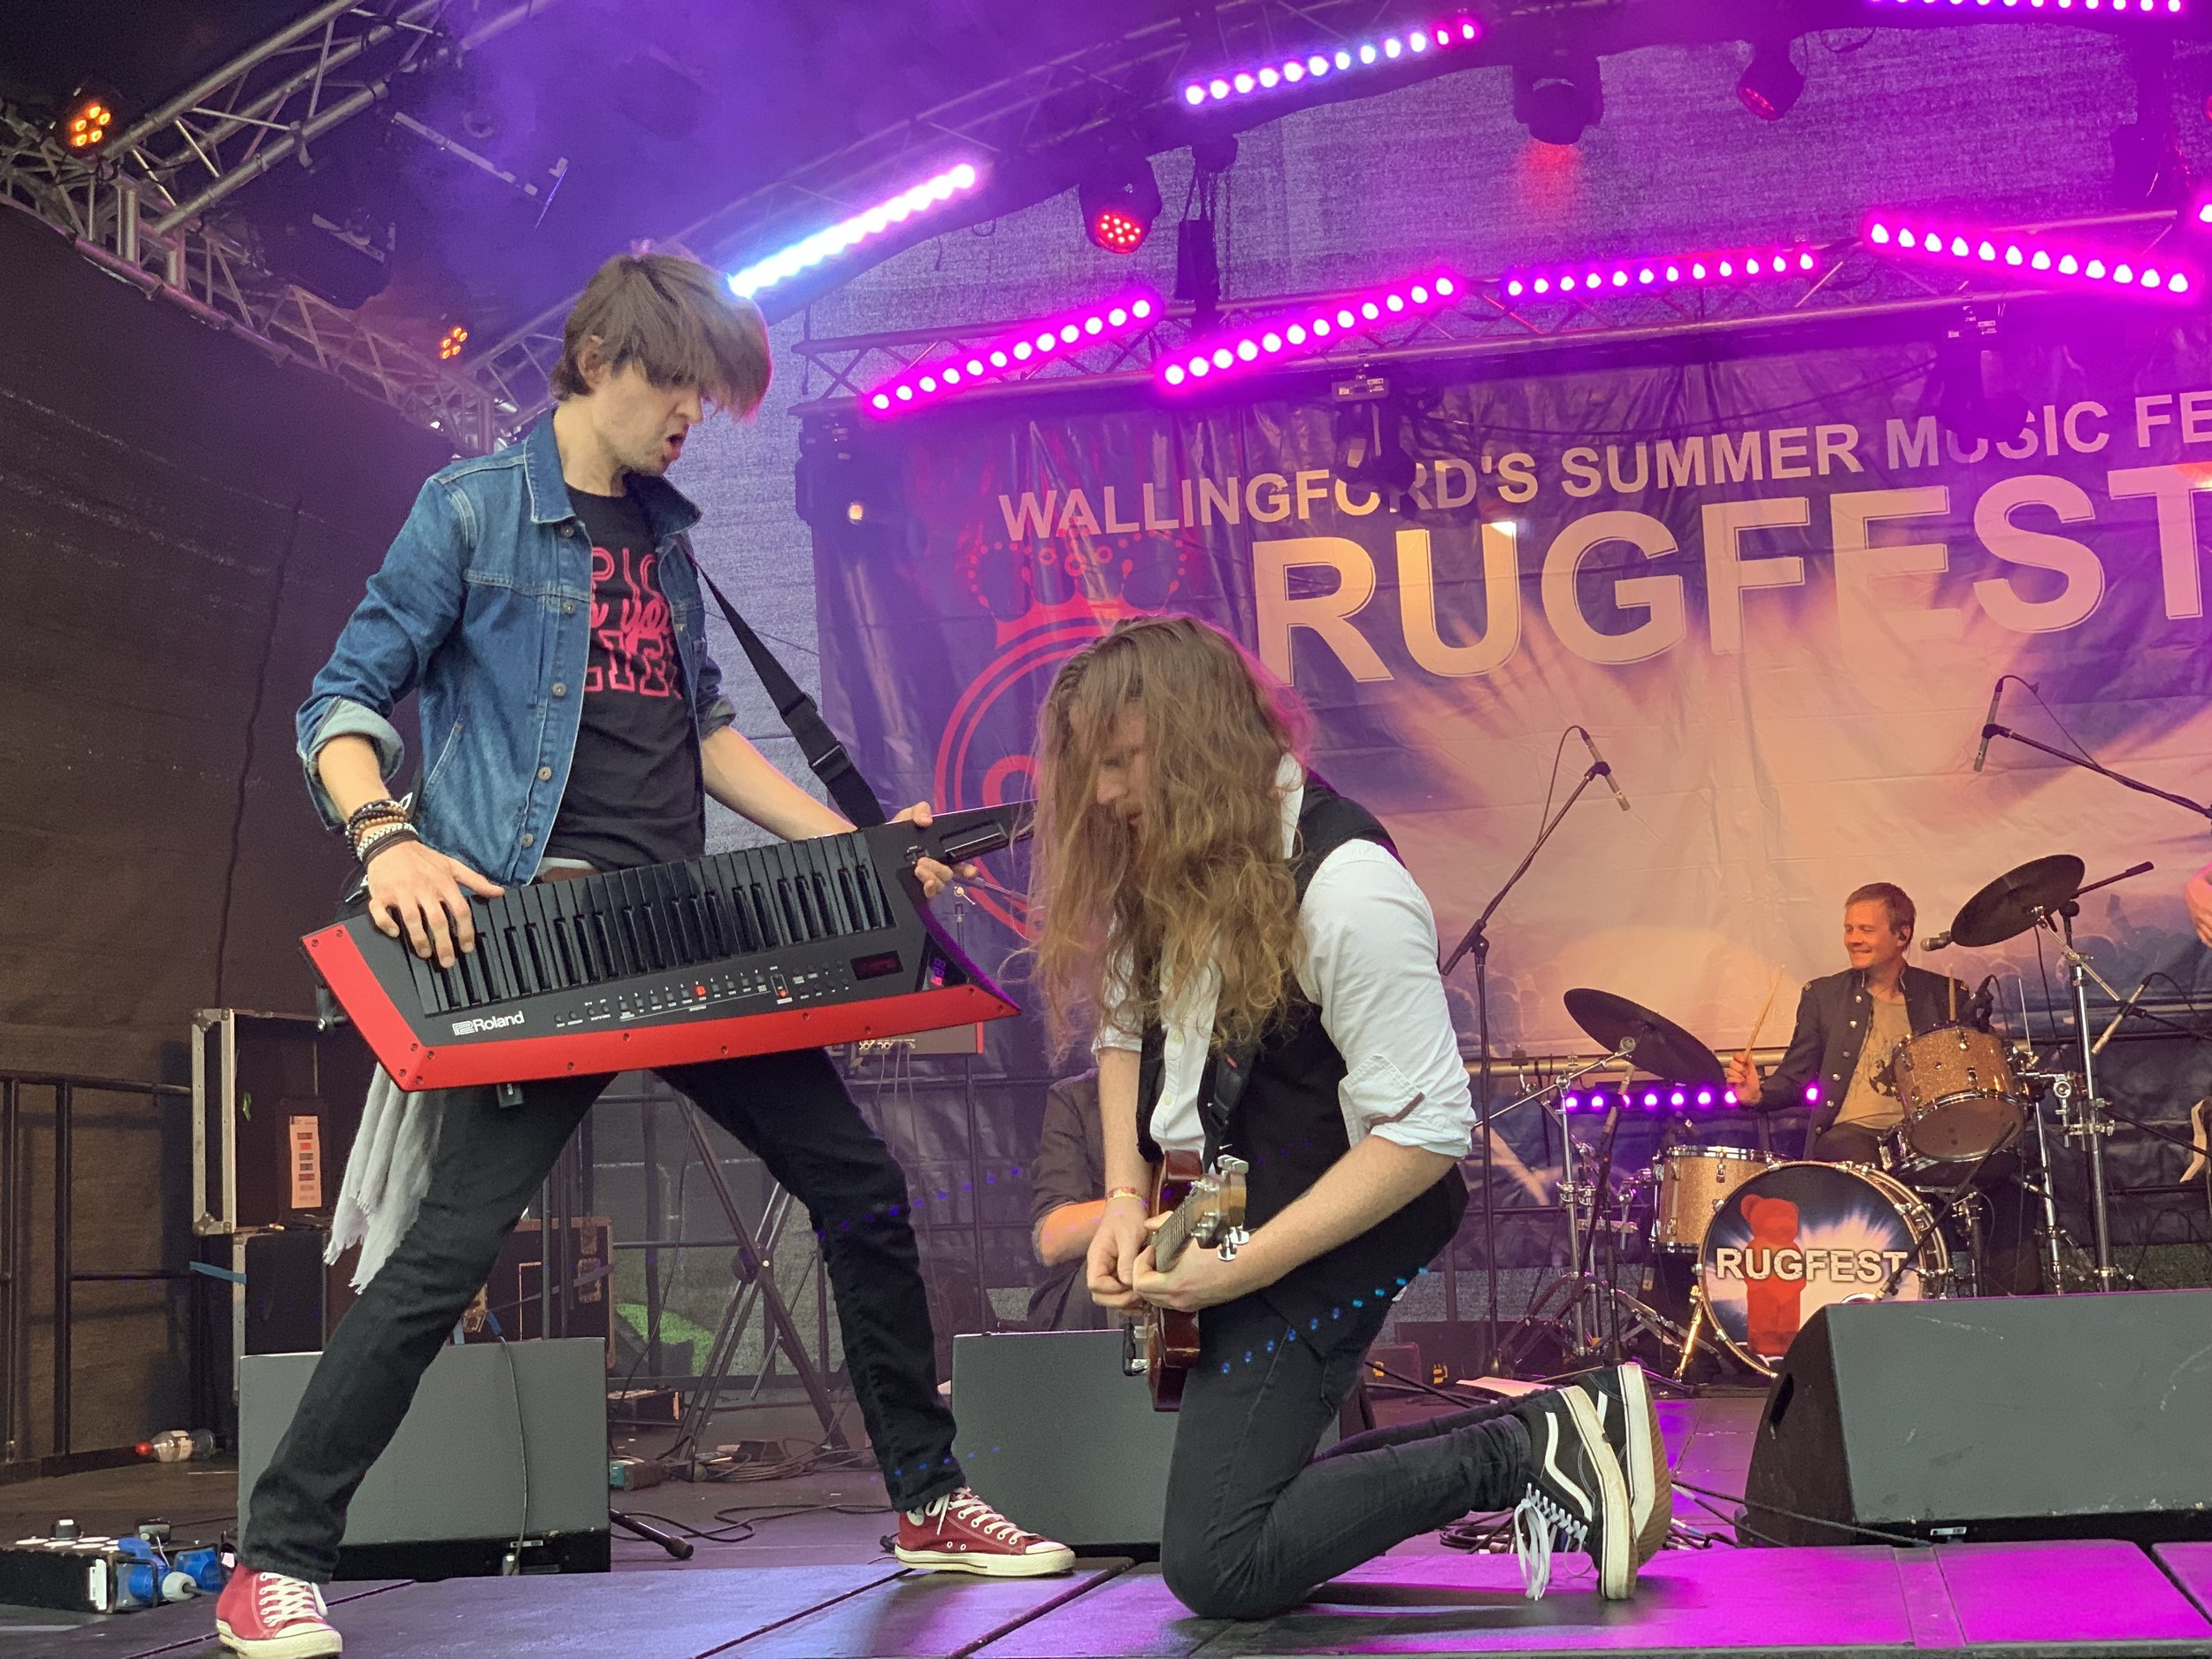 ONSTAGE AT RUGFEST